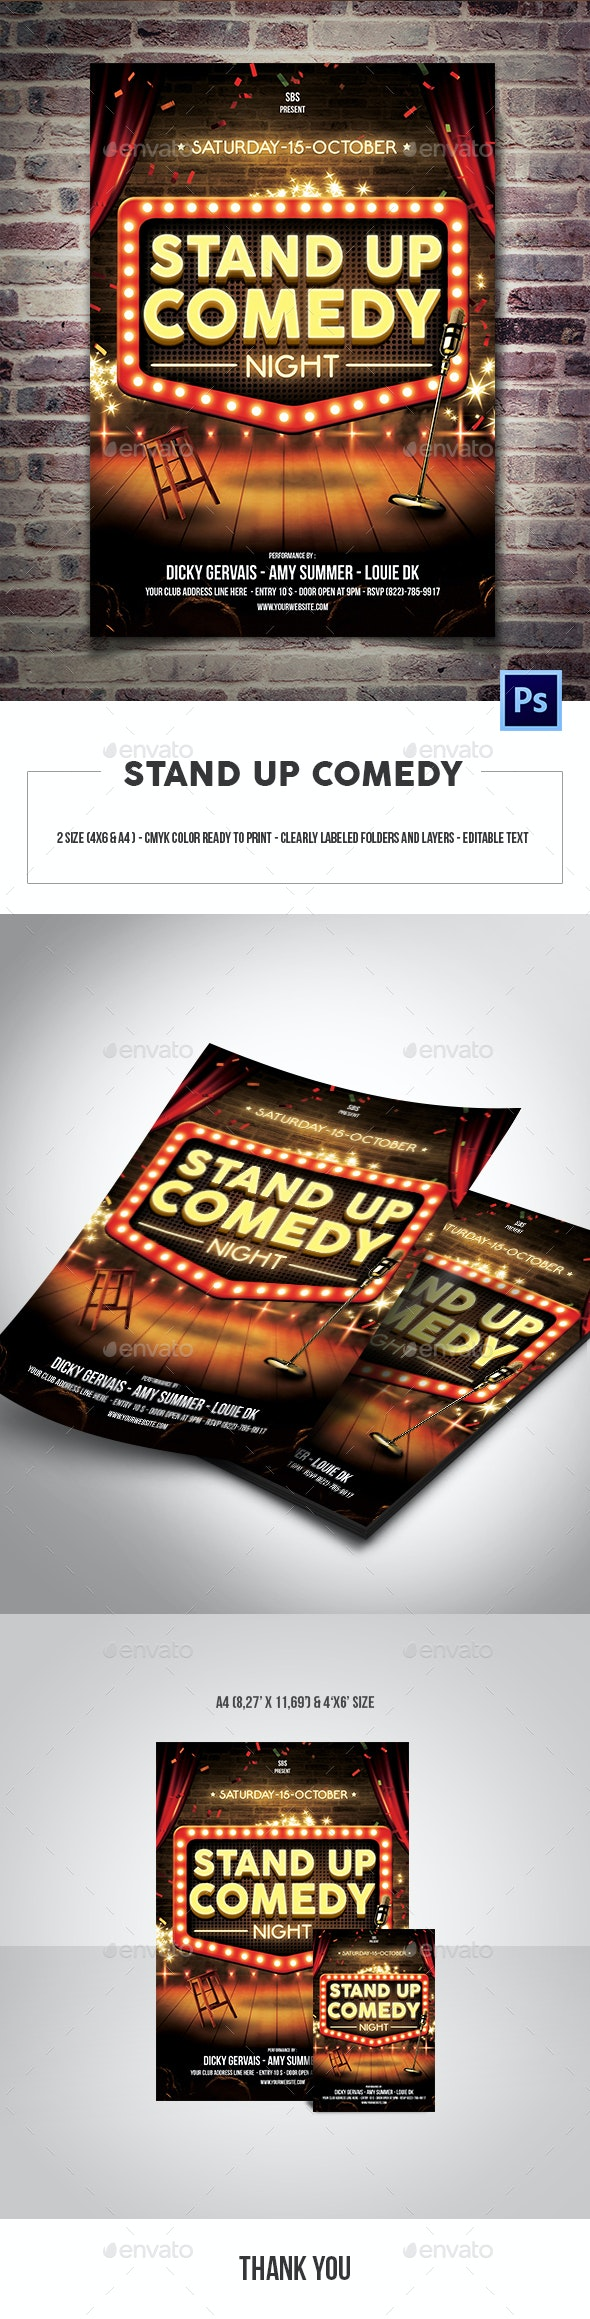 Stand Up Comedy Flyer Template - Events Flyers